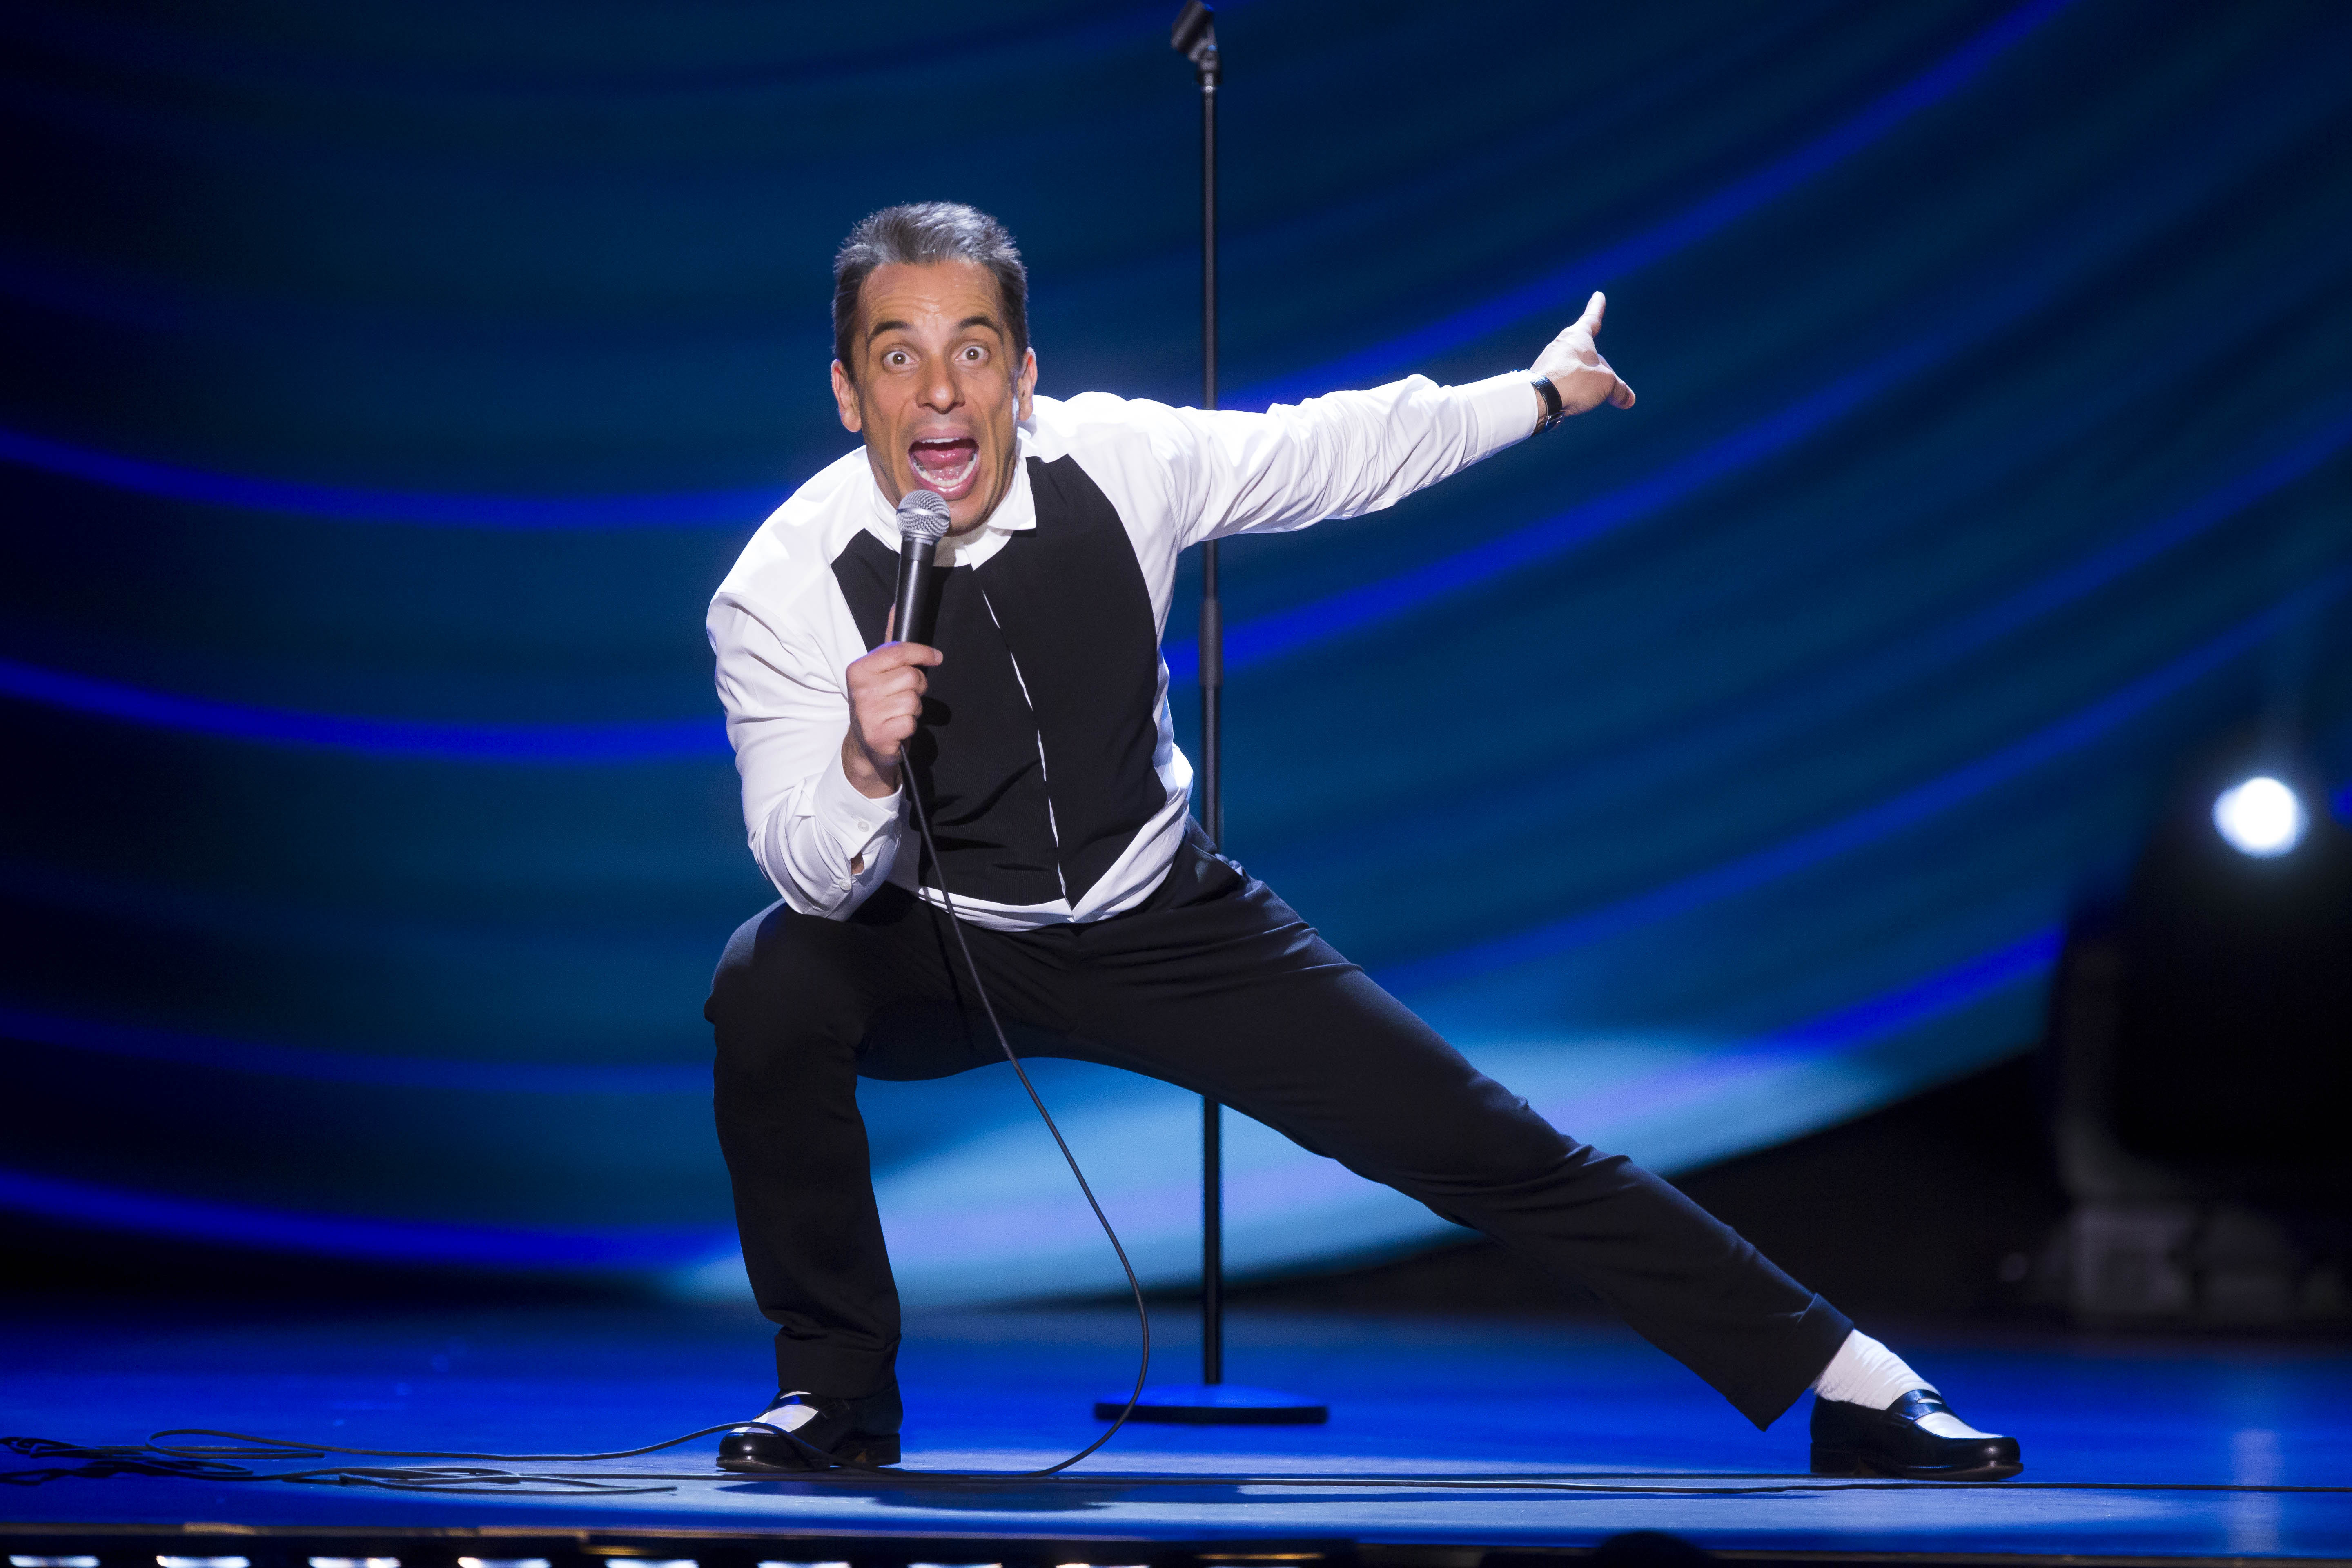 Sebastian Maniscalco headlines a sold-out show at Shea's Performing Arts Center. (Todd Rosenberg Photography)